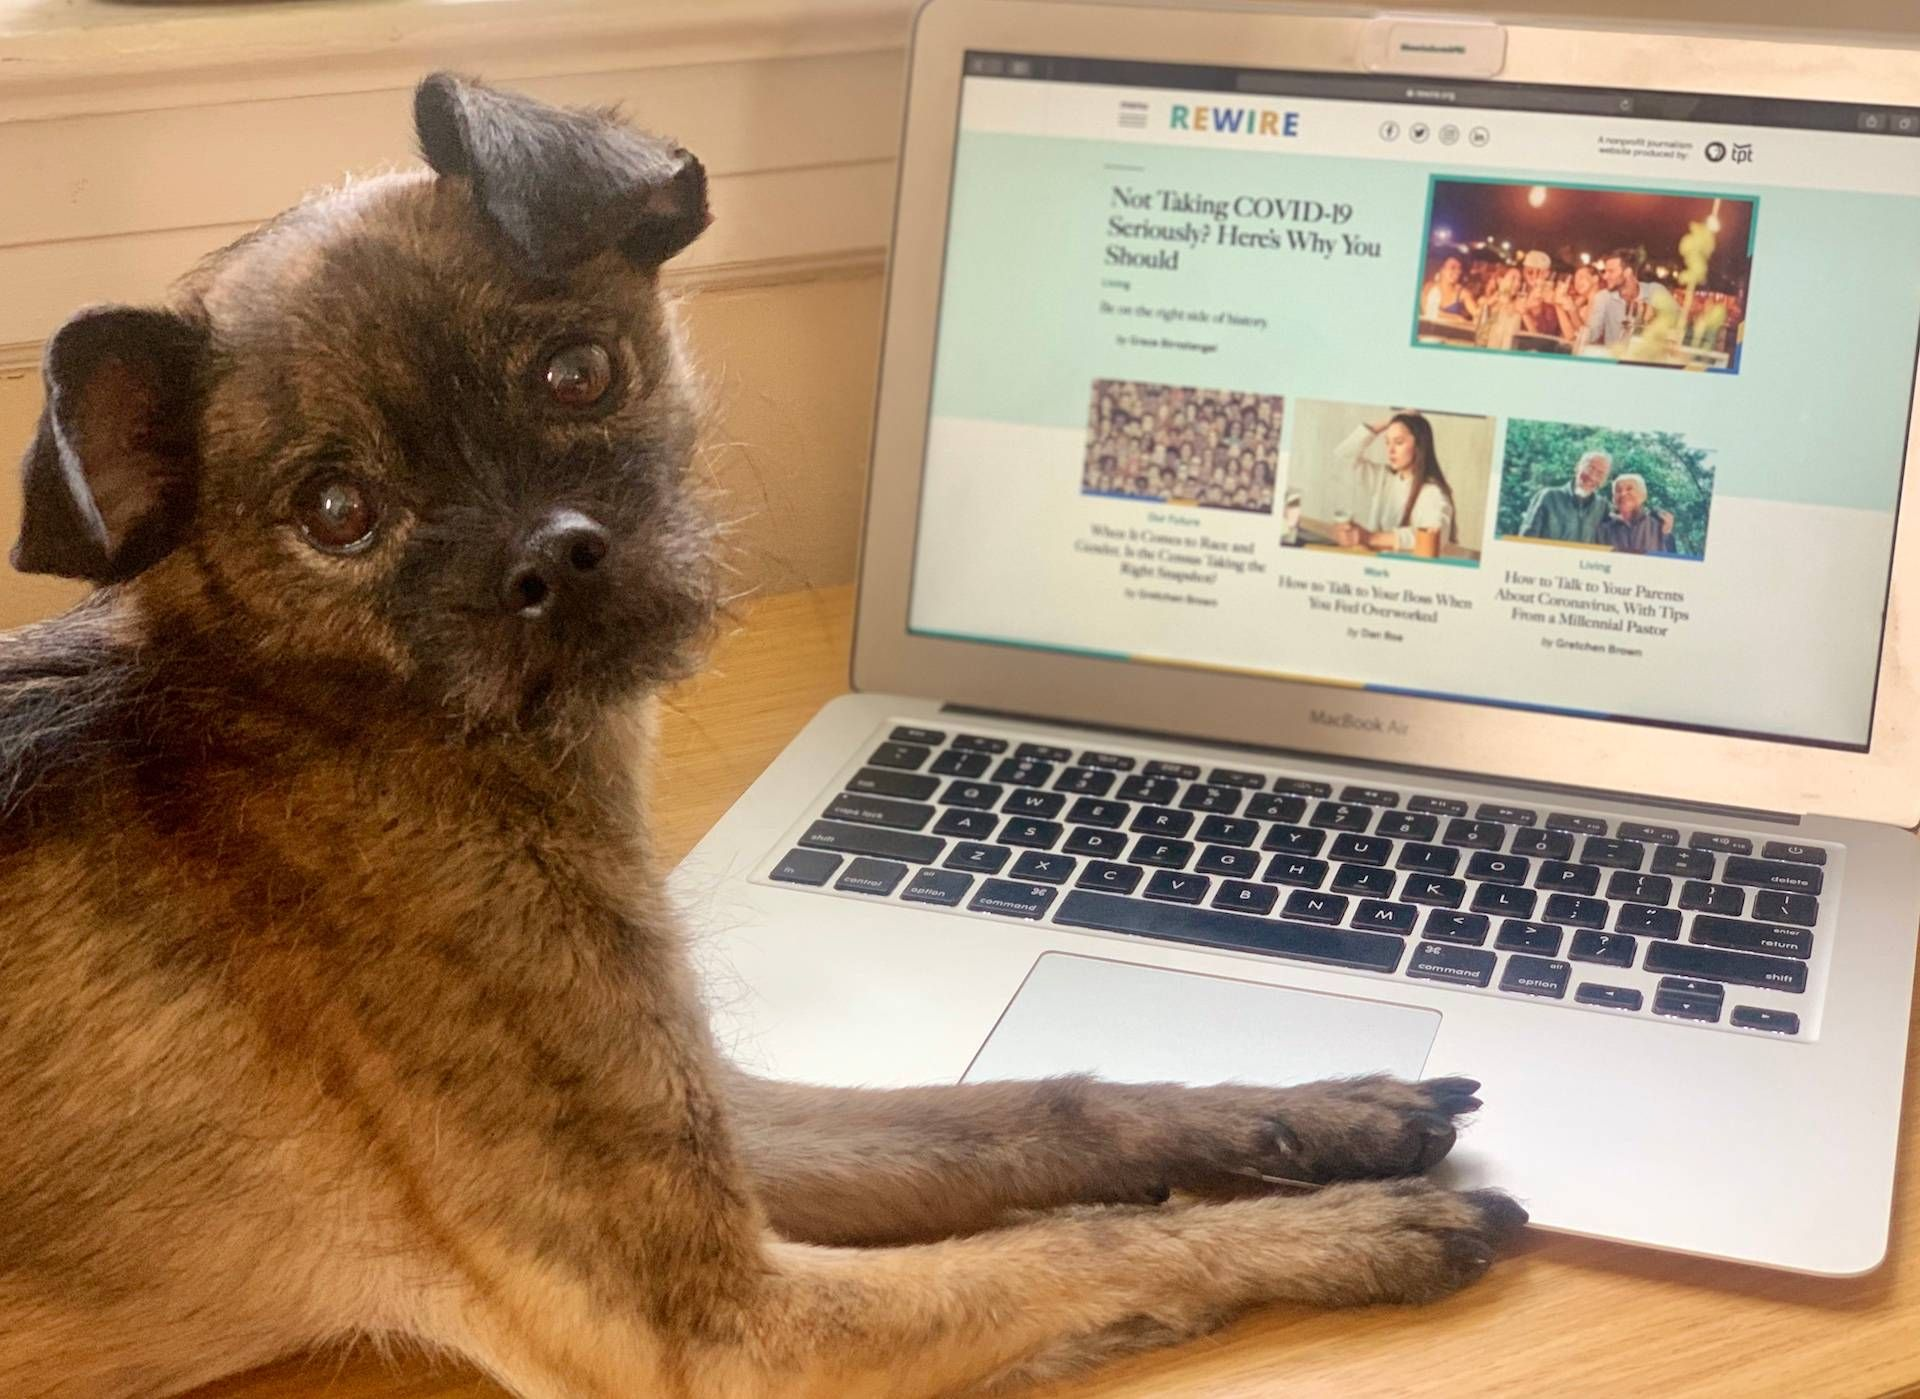 A cute dog at a laptop computer. Rewire PBS Living New Look